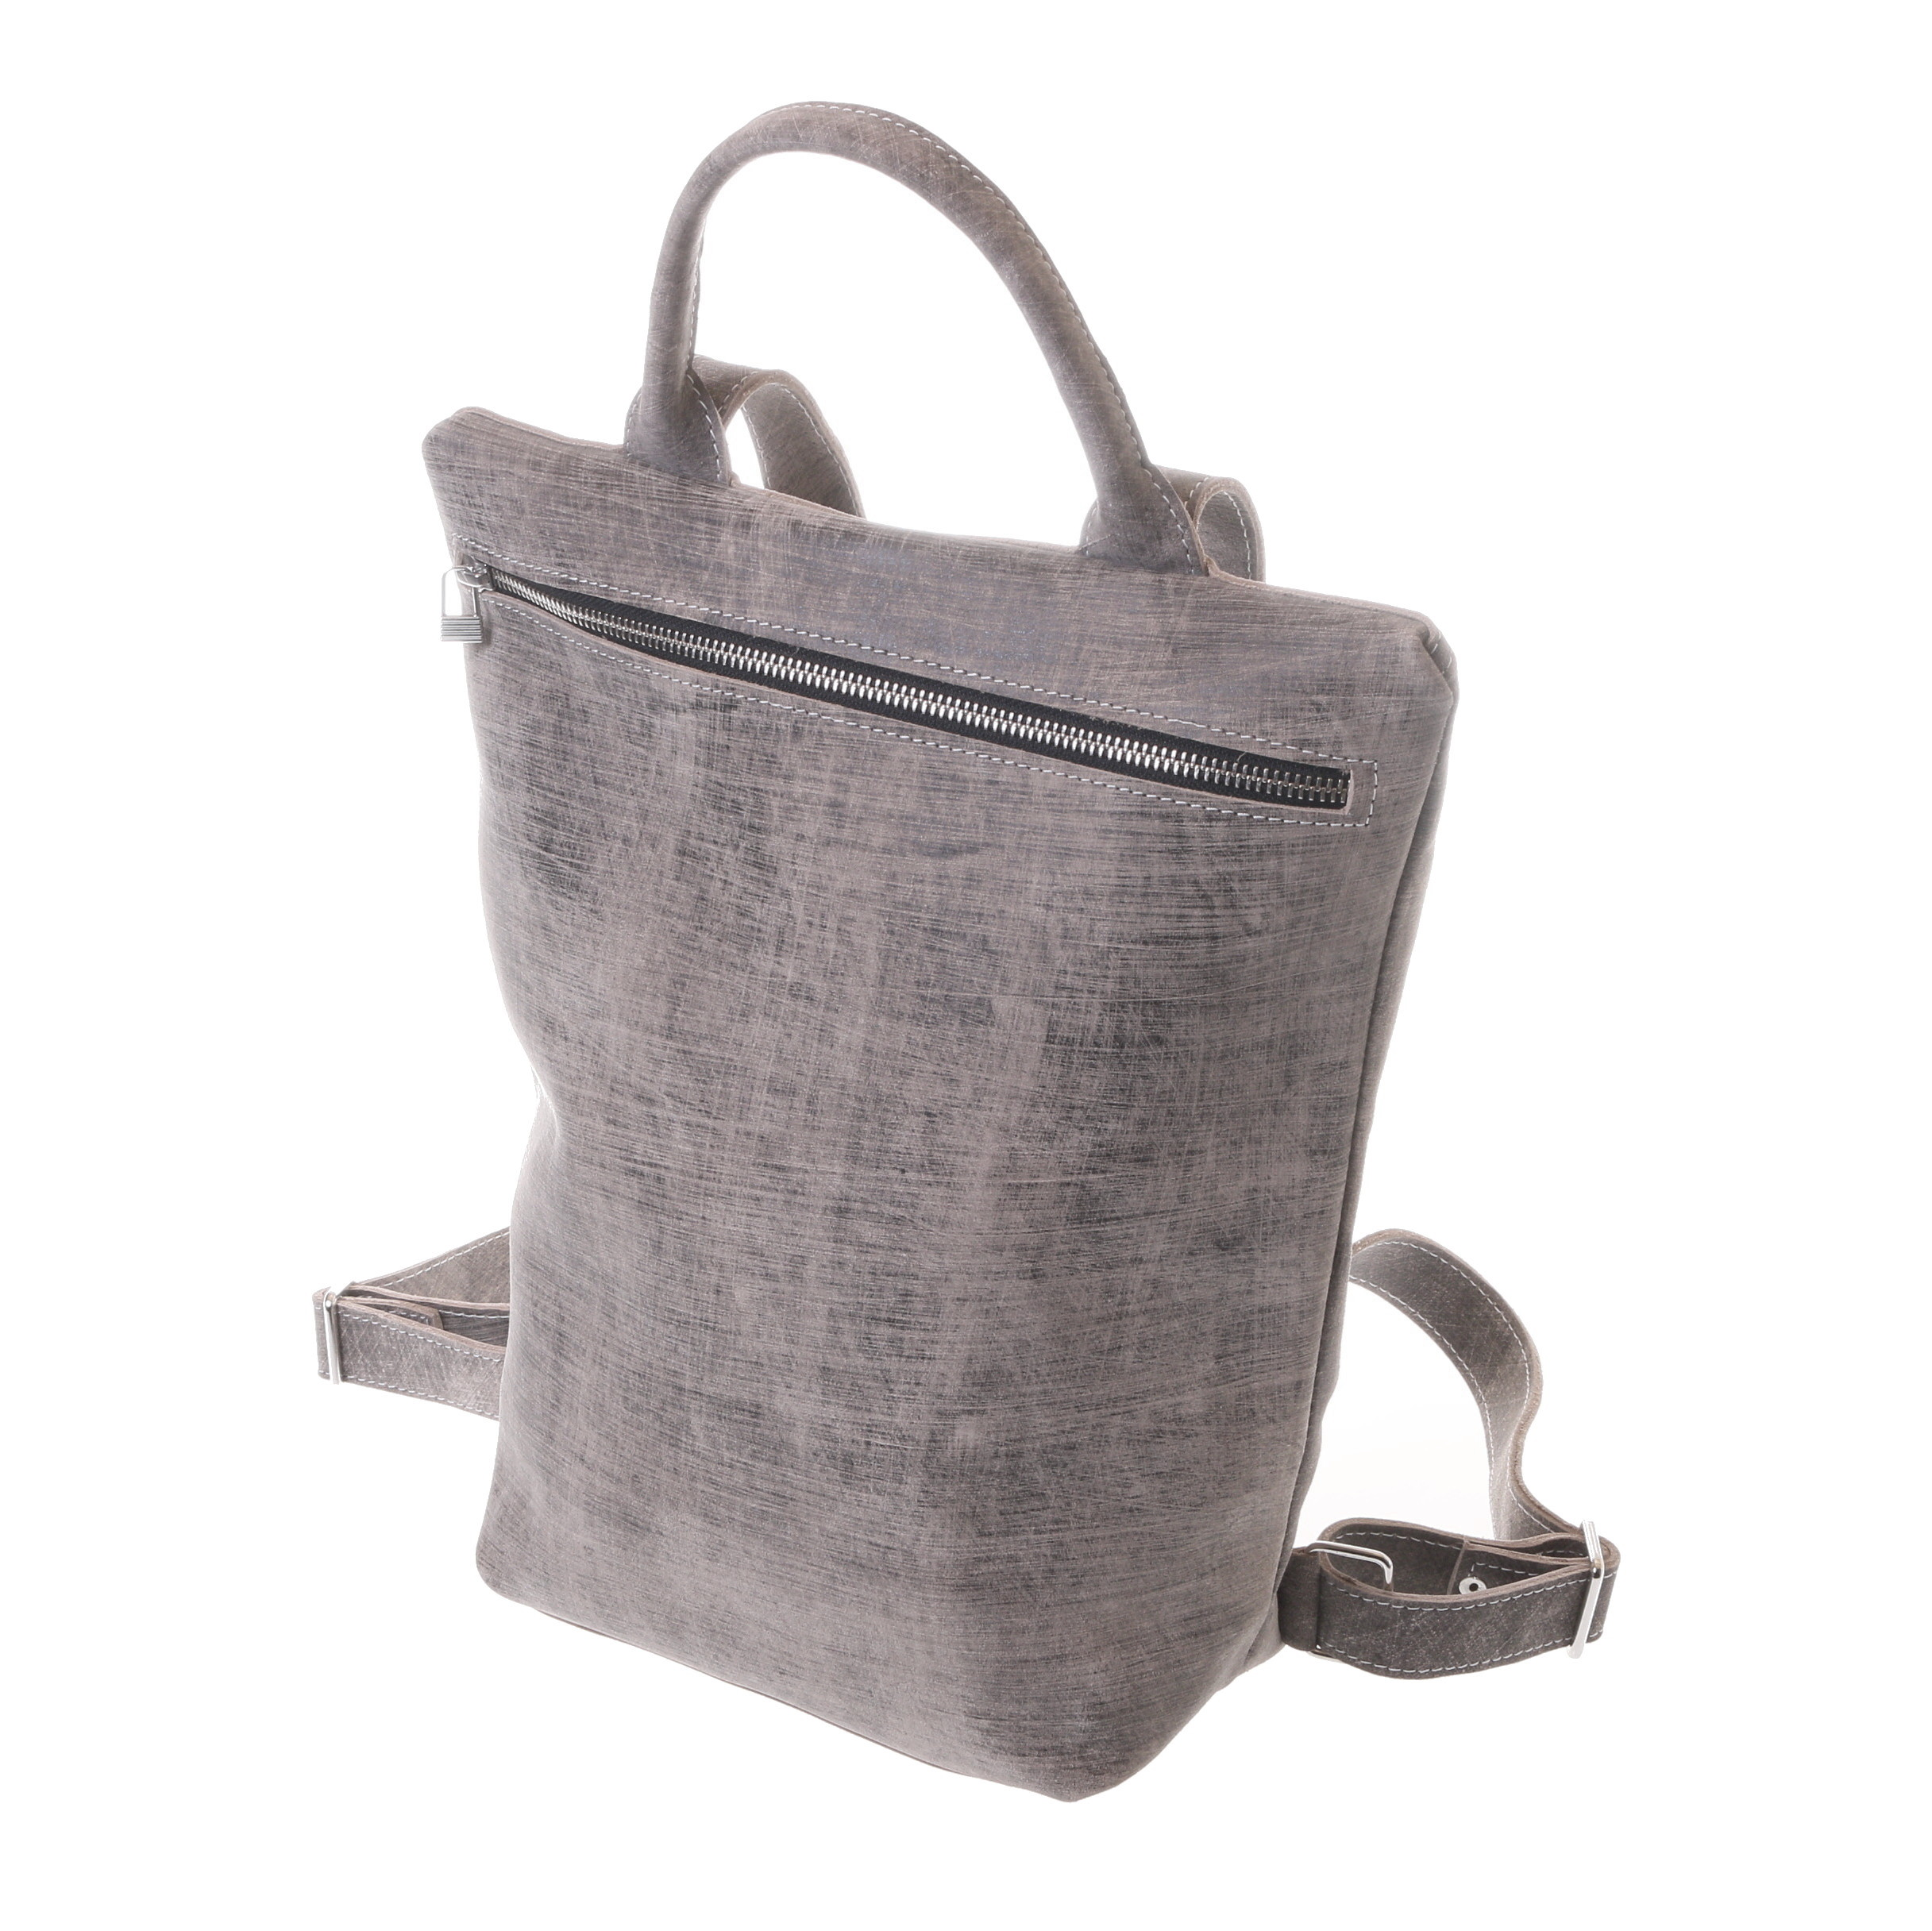 Gundara - fair and handmade grey-scratch leather backpack - directly from Ethiopia